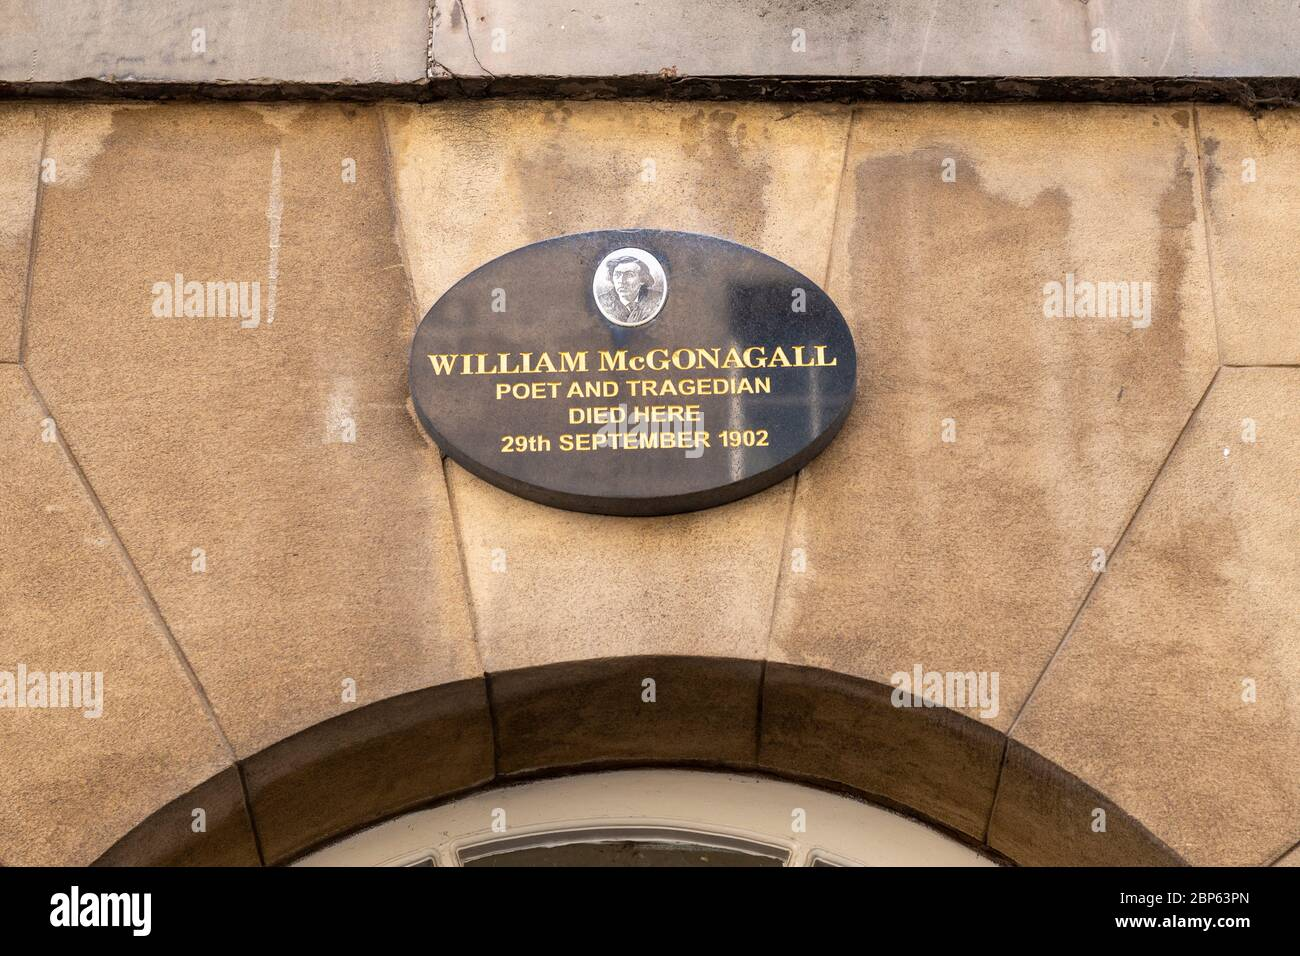 Commemorative plaque for William McGonagall poet and tragedian on building where he died in South College Street, Edinburgh, Scotland, UK Stock Photo